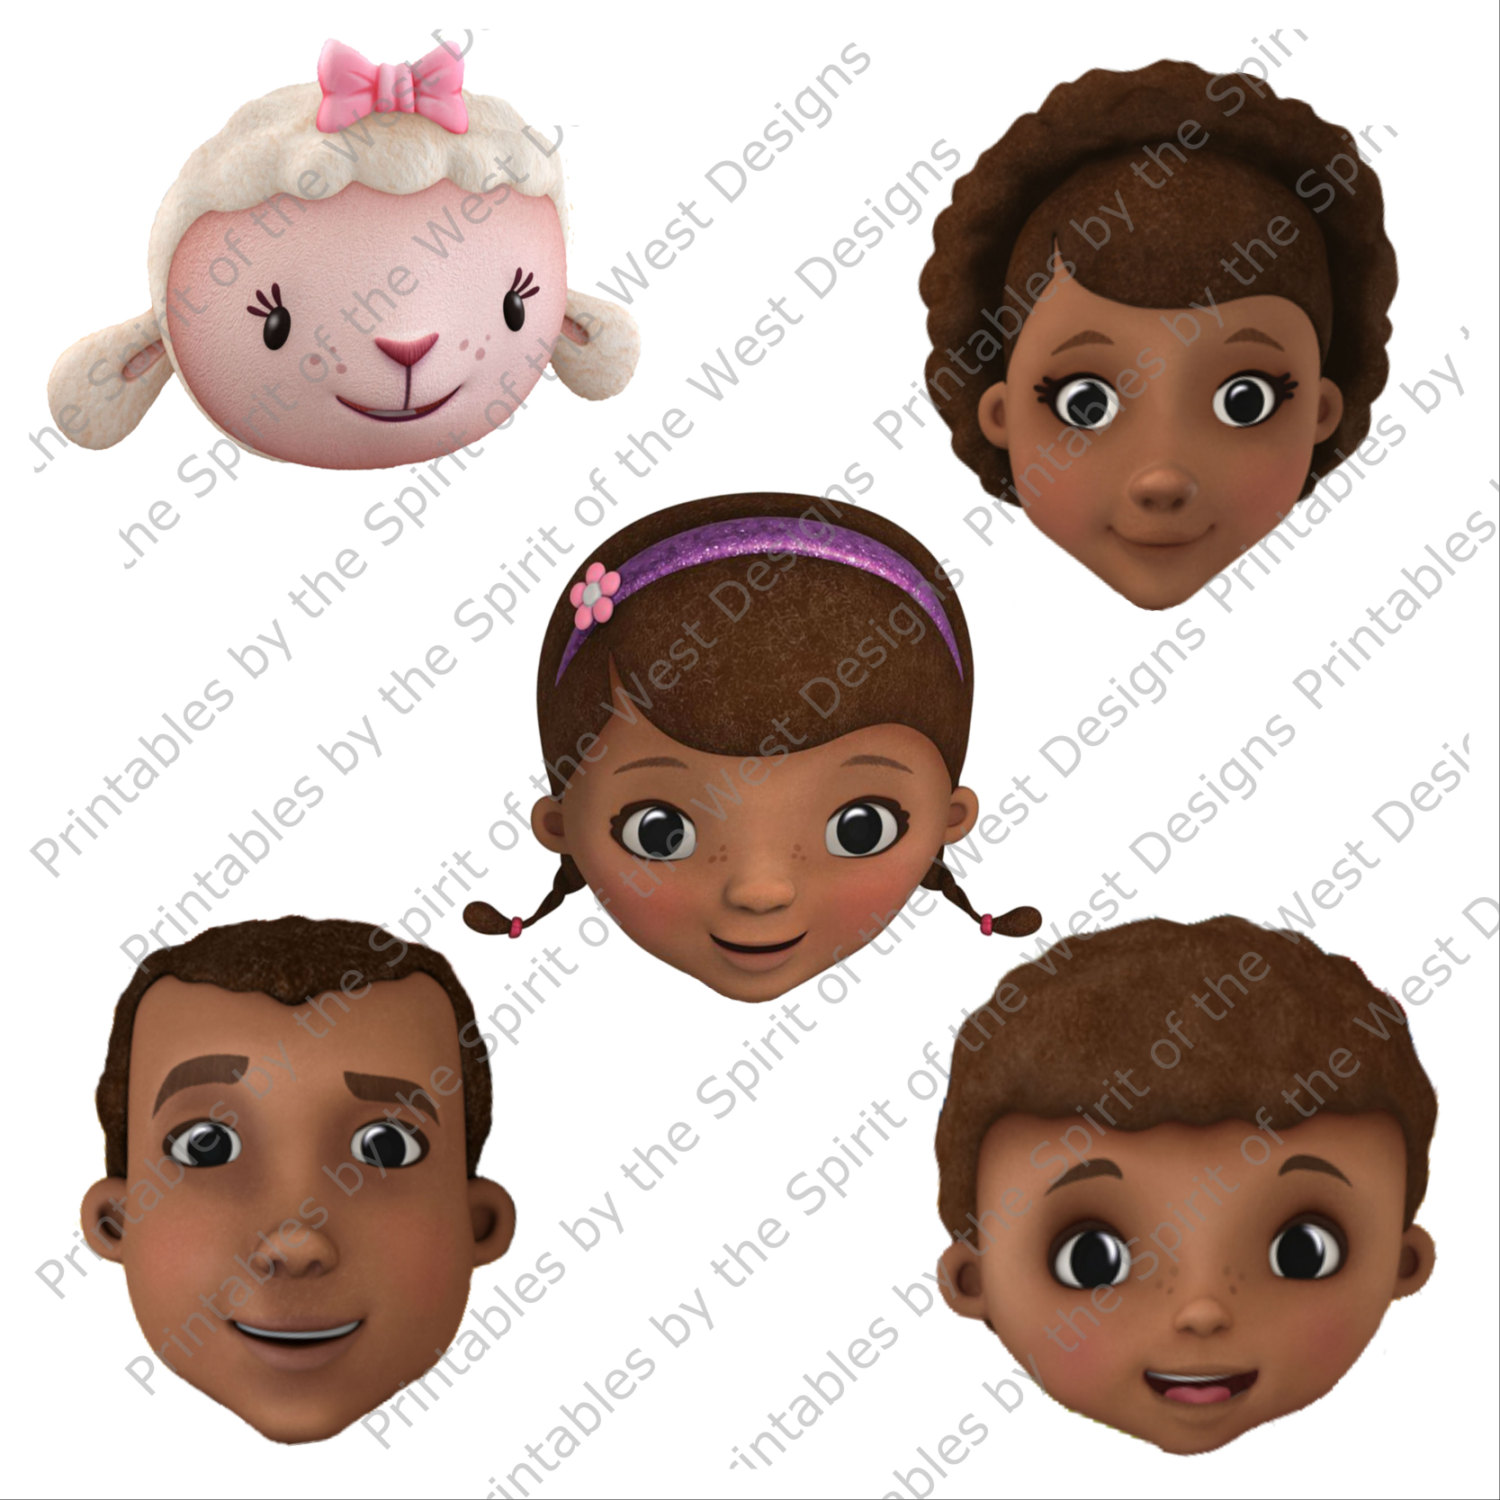 Face clipart doc mcstuffins Clipart mcstuffins BBCpersian7 face collections